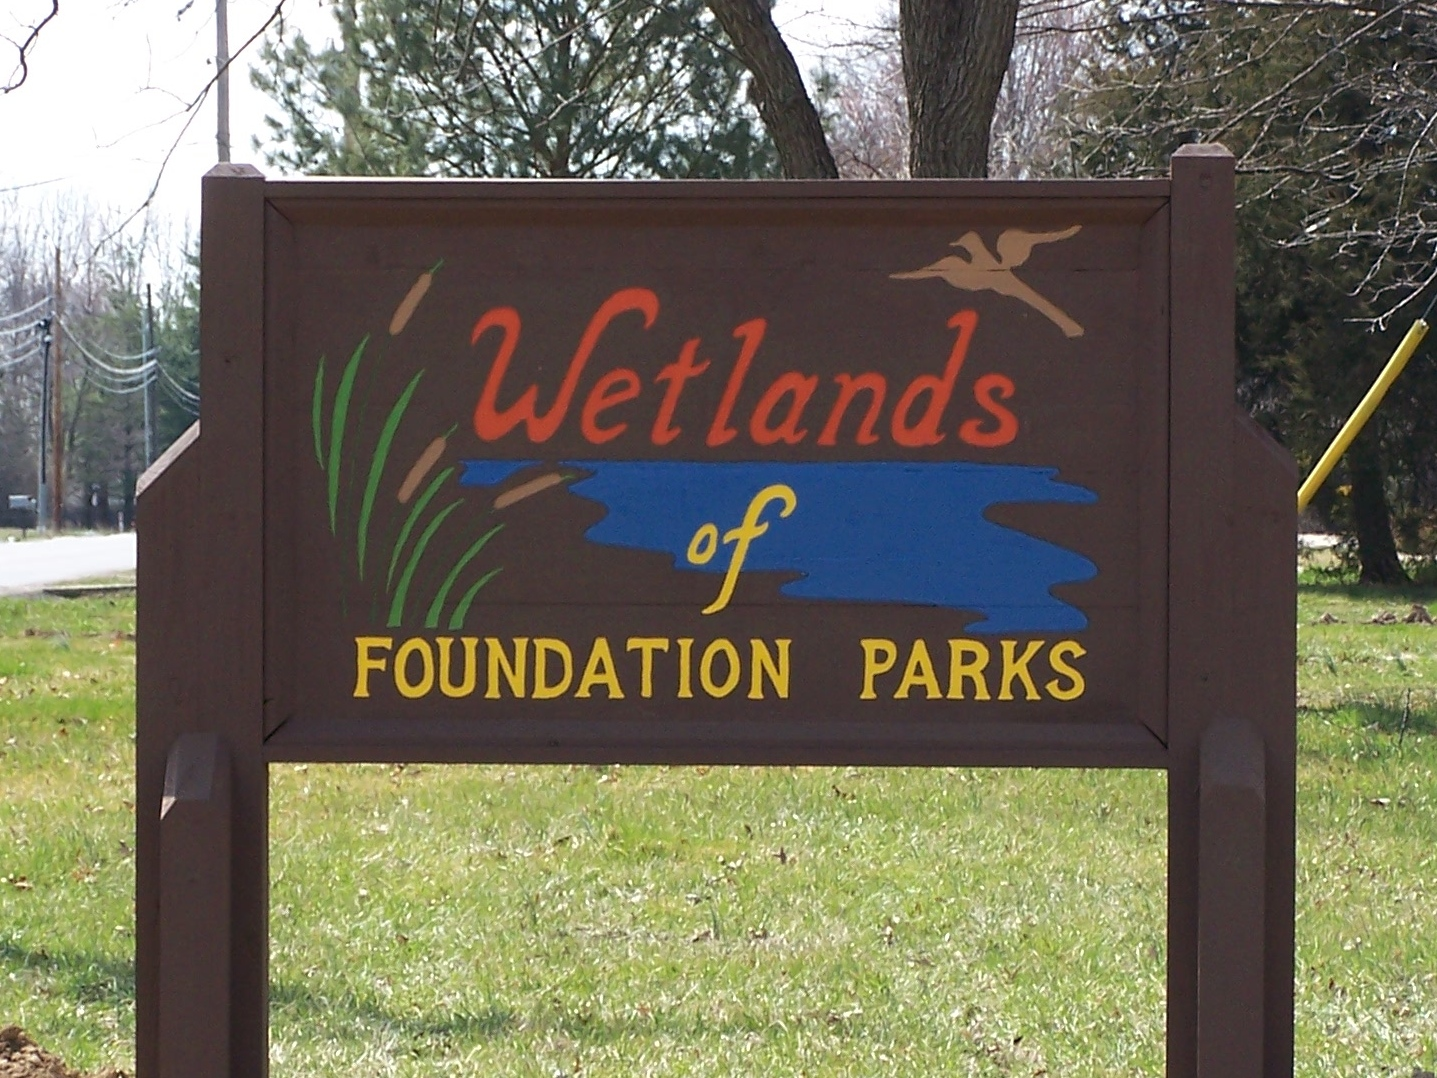 Entry sign to the Wetlands